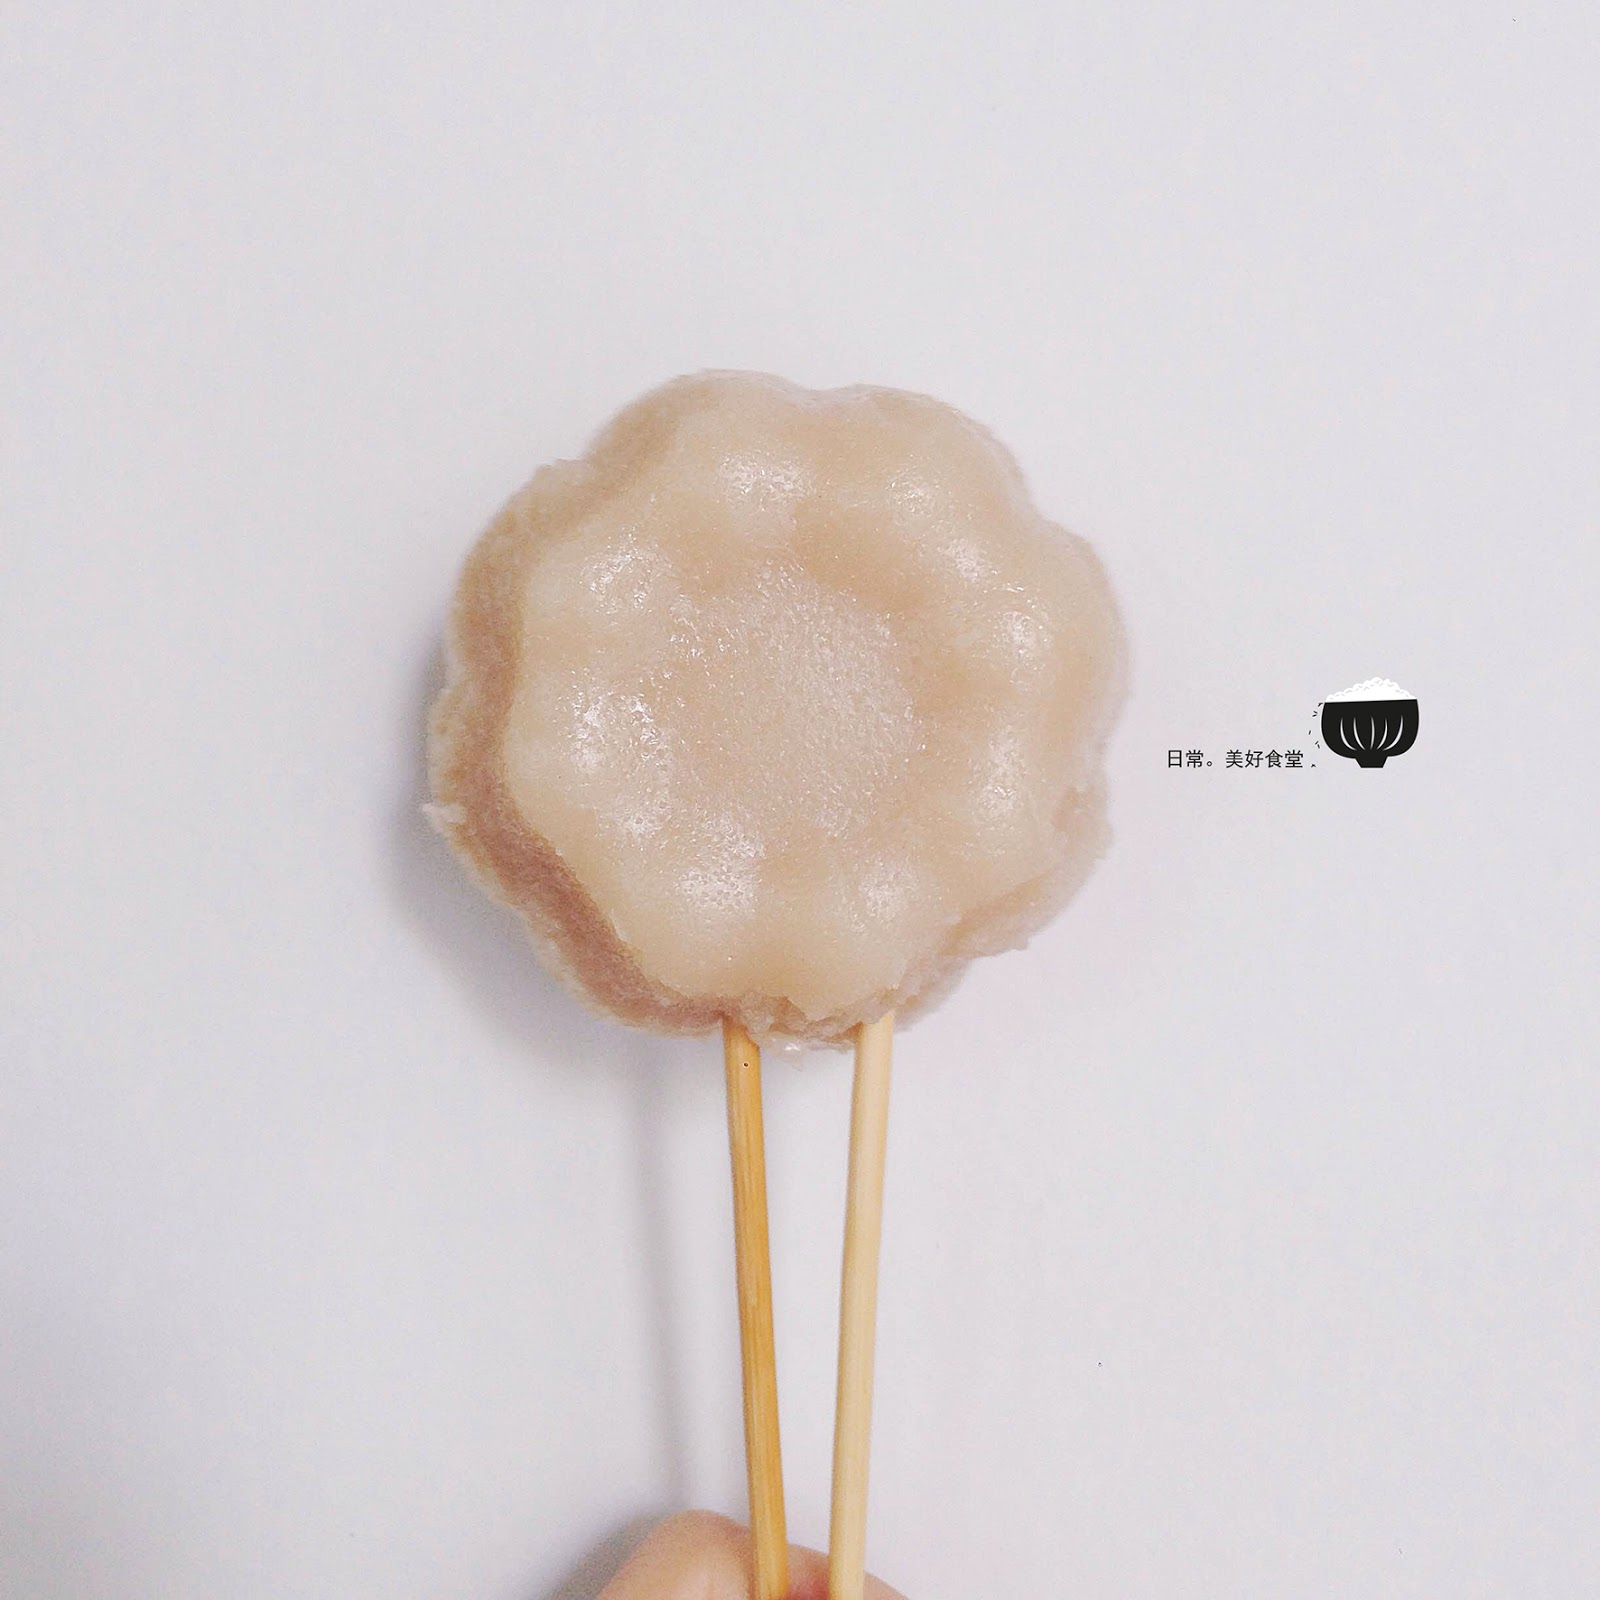 Soul recipes for sweet people 日常。美好食堂: chinese steamed rice ...